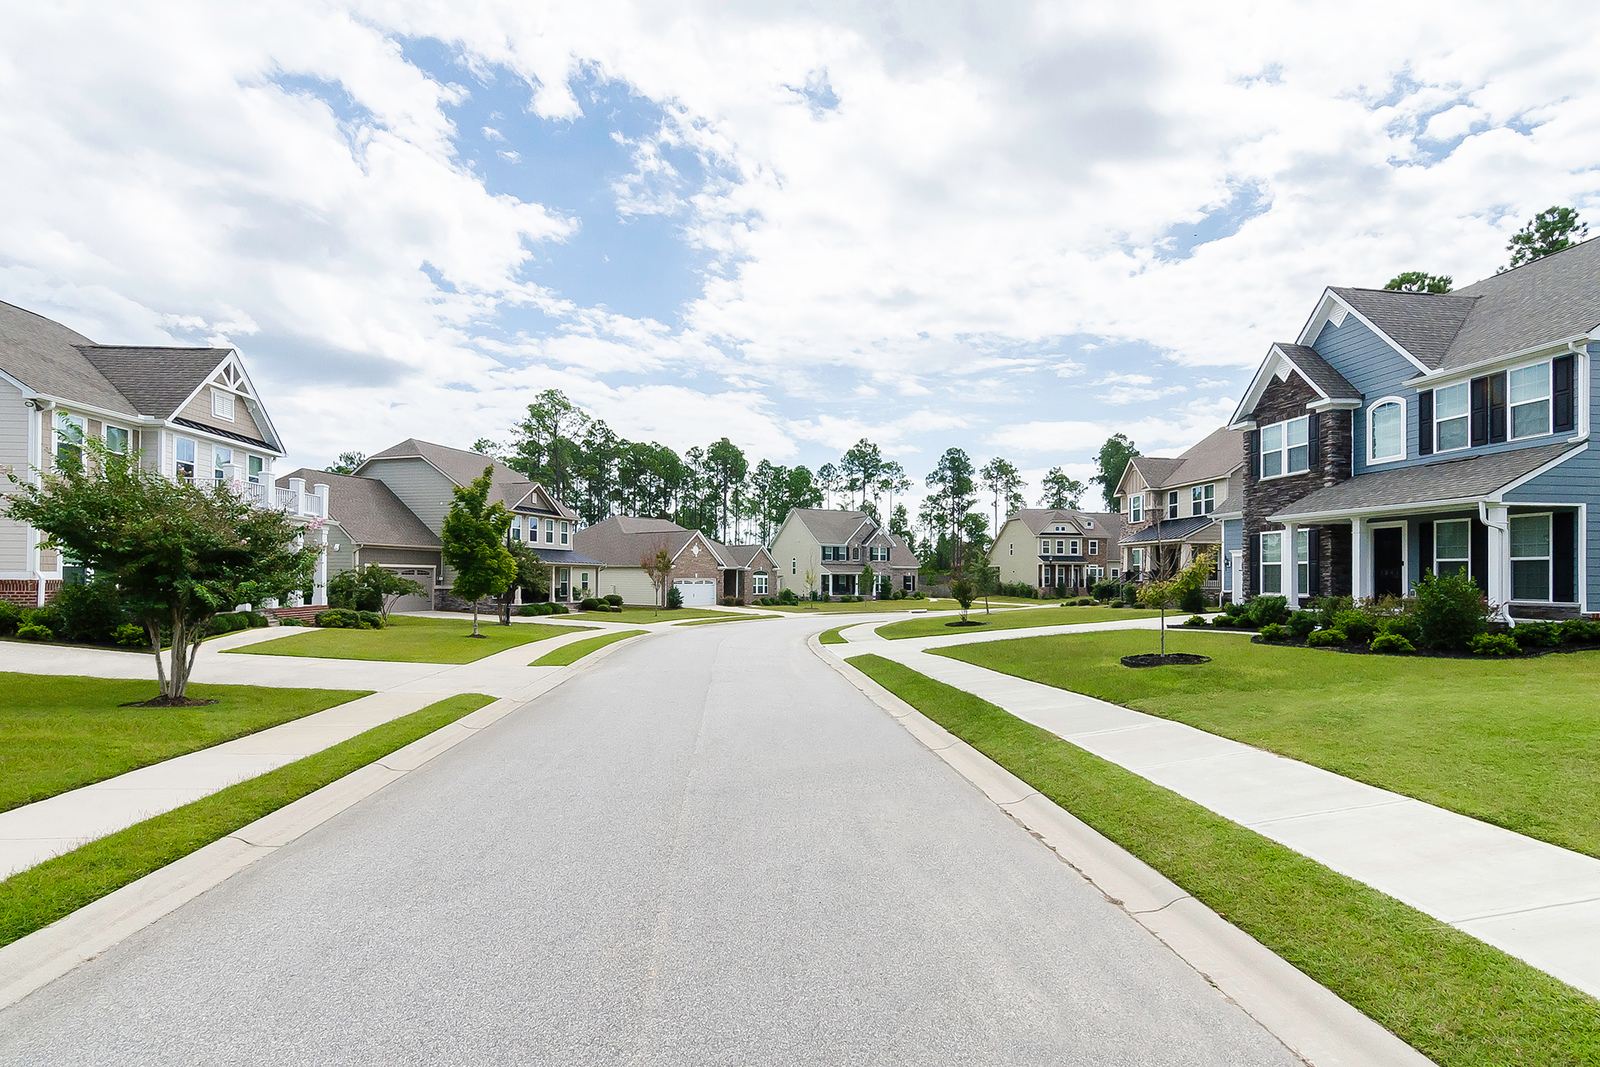 New Homes For Sale At Barr Lake In Lexington Sc Within